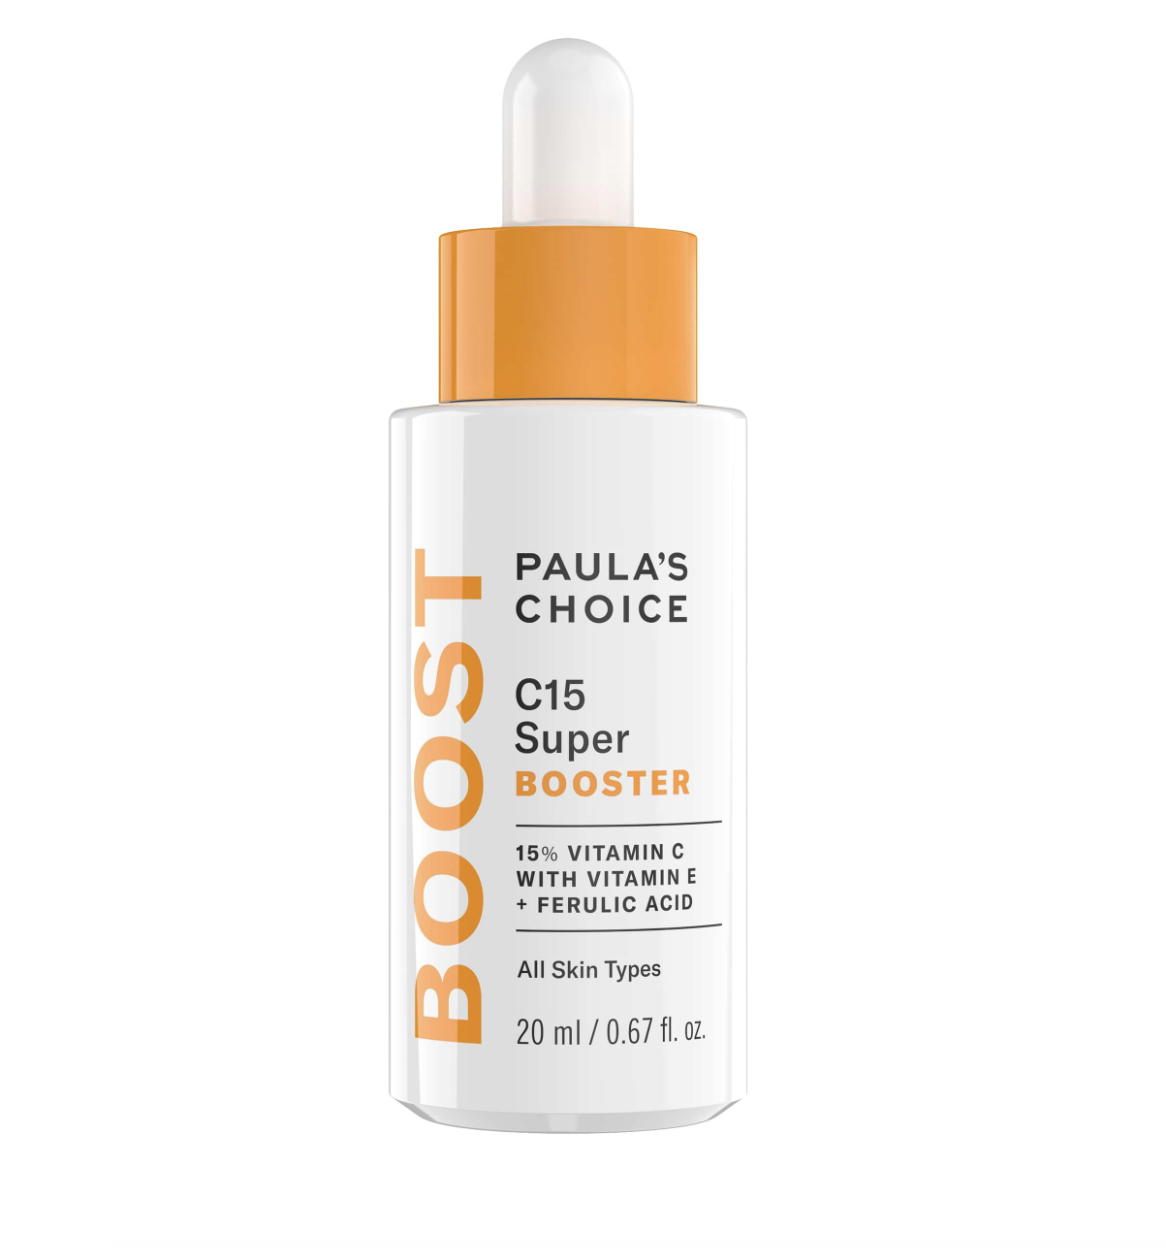 Paula's Choice super booster